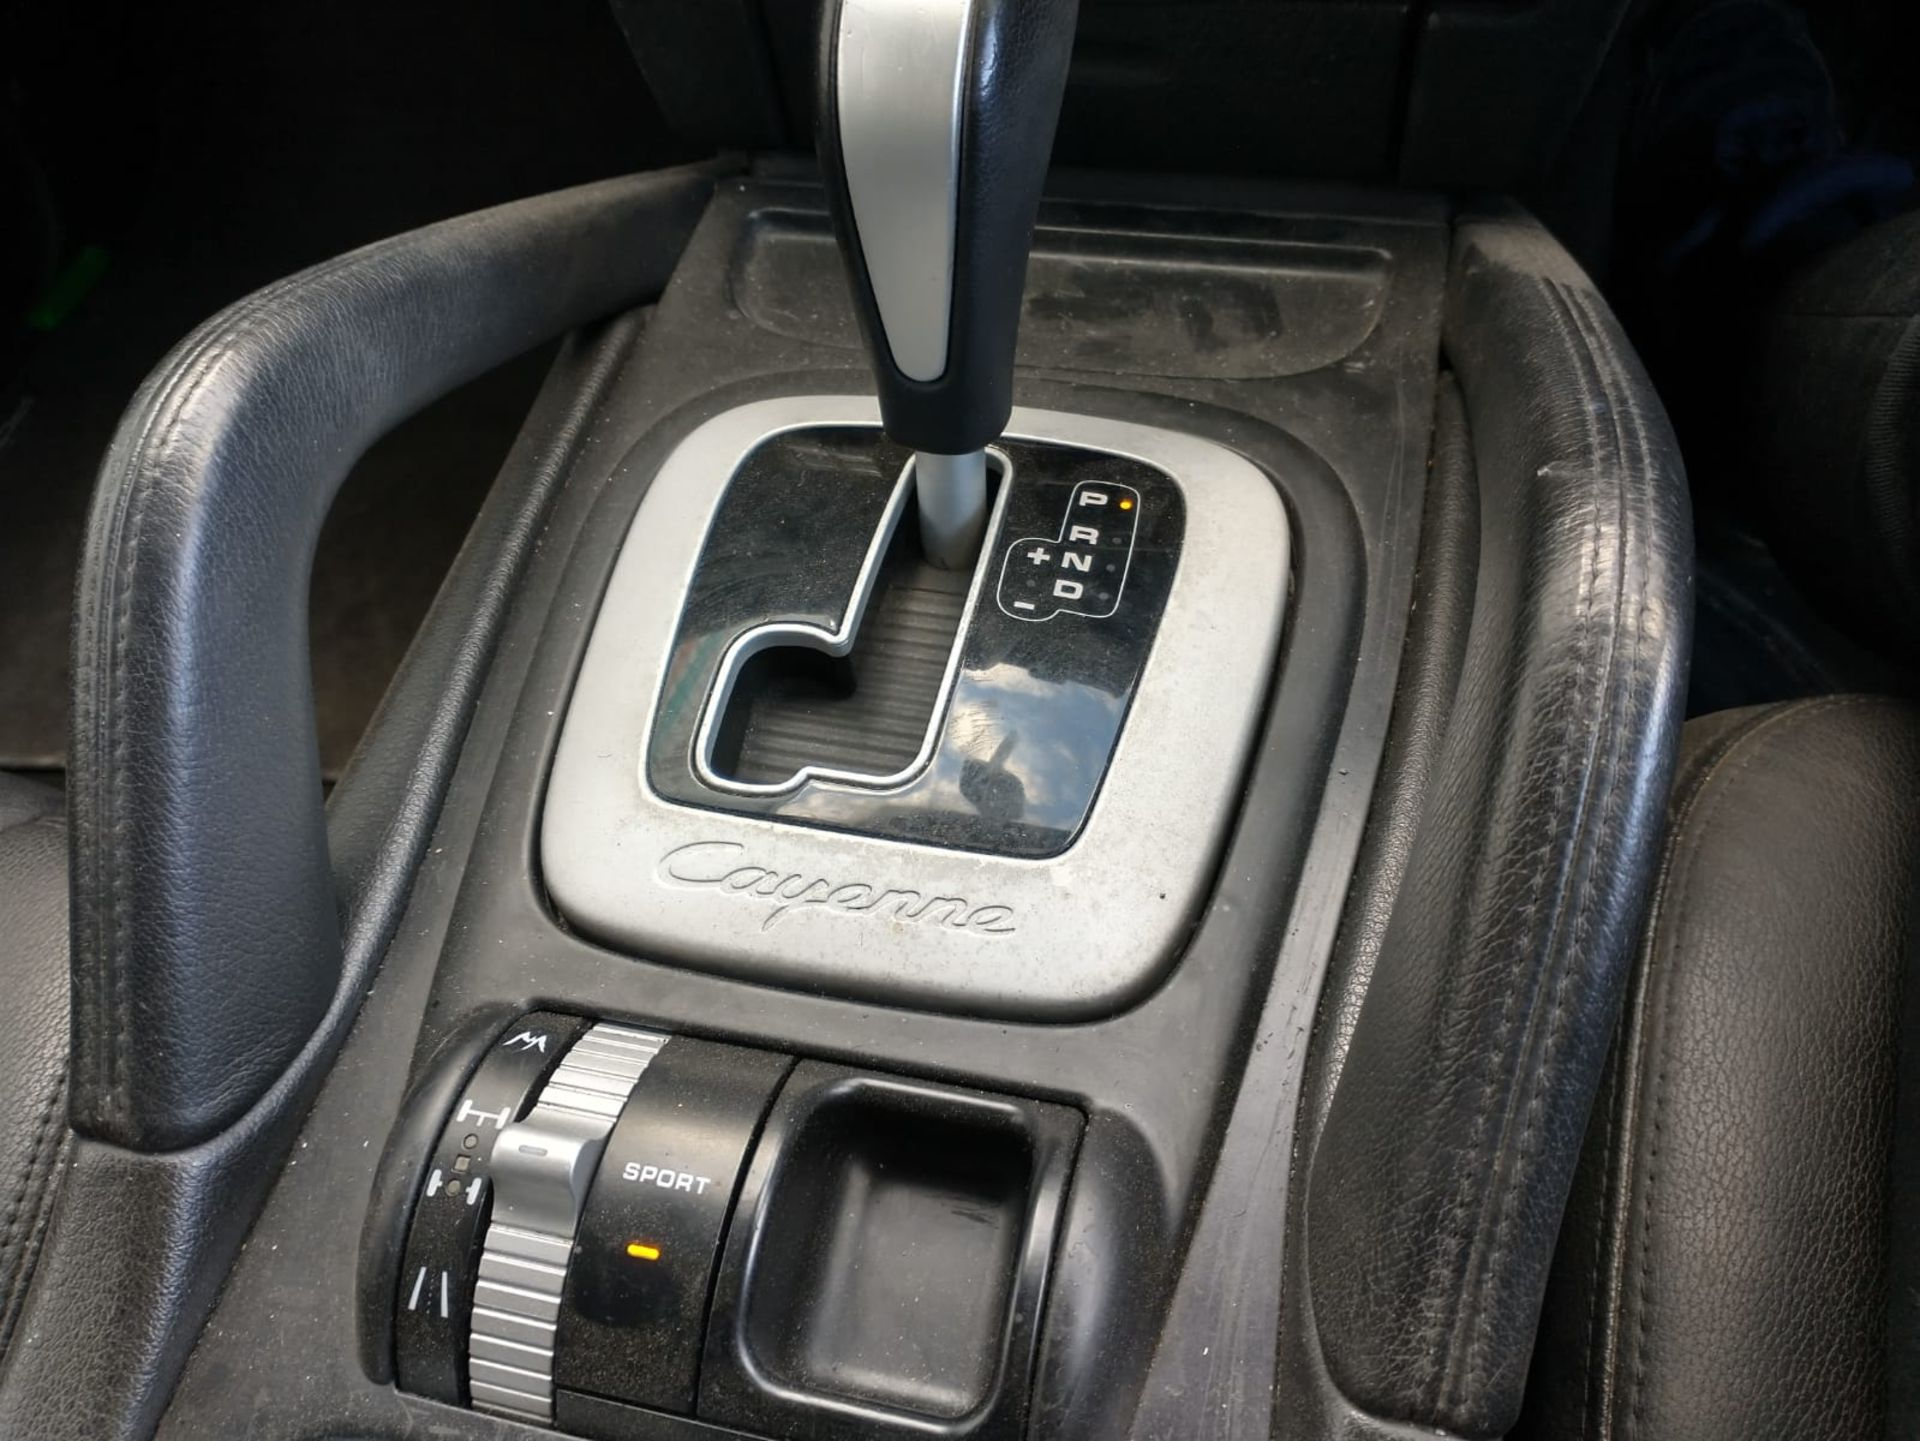 2008 Porsche Cayenne Tiptronic 3.6 5Dr SUV - CL505 - NO VAT ON THE HAMMER - Location: Corby, Northam - Image 13 of 16